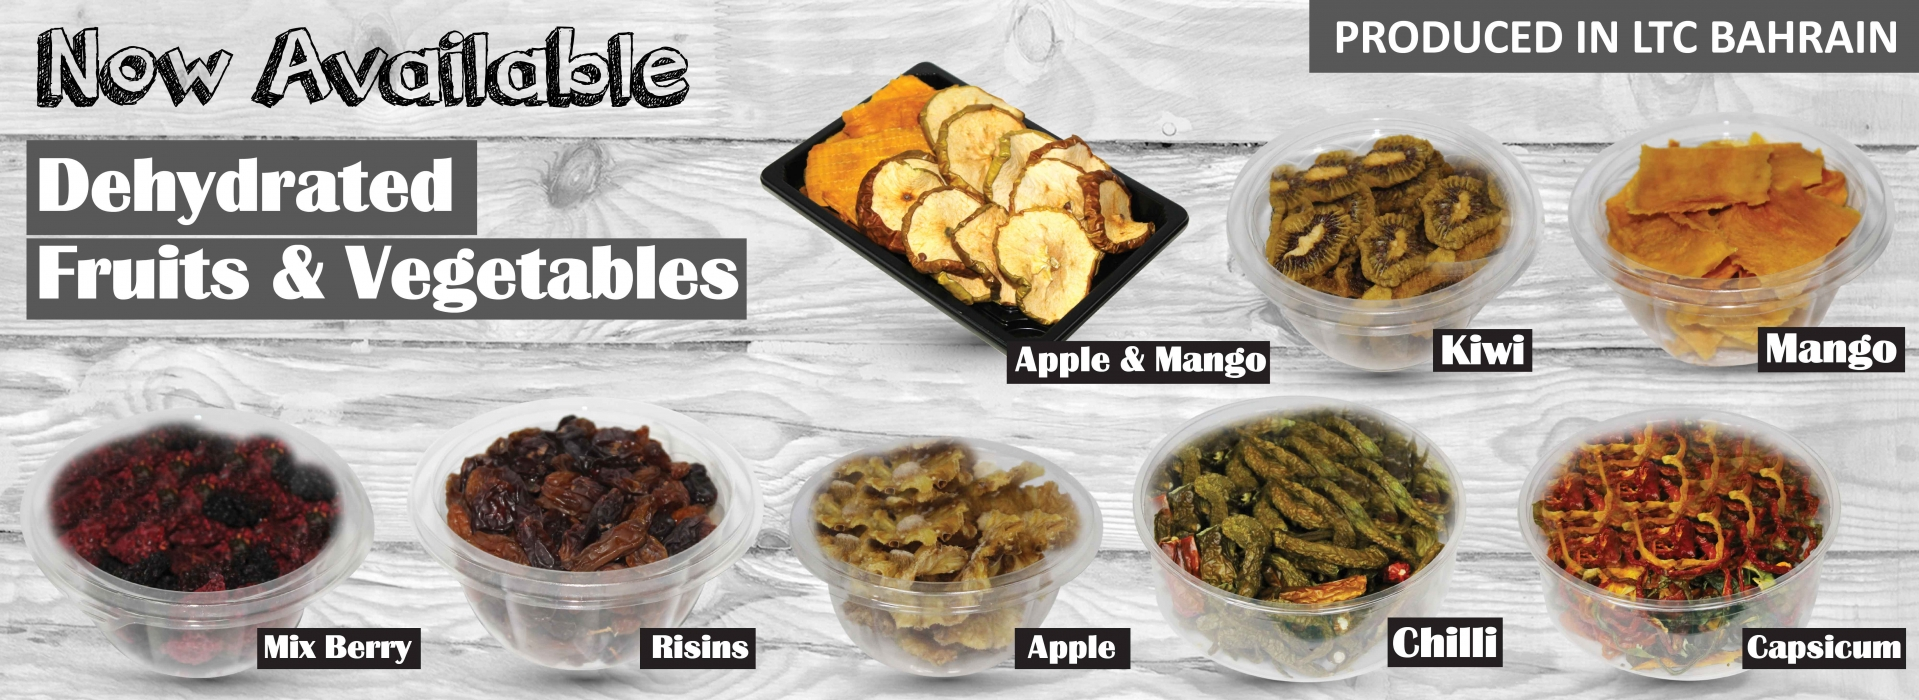 Dehydrated Fruits & Vegetables Available now at LTC